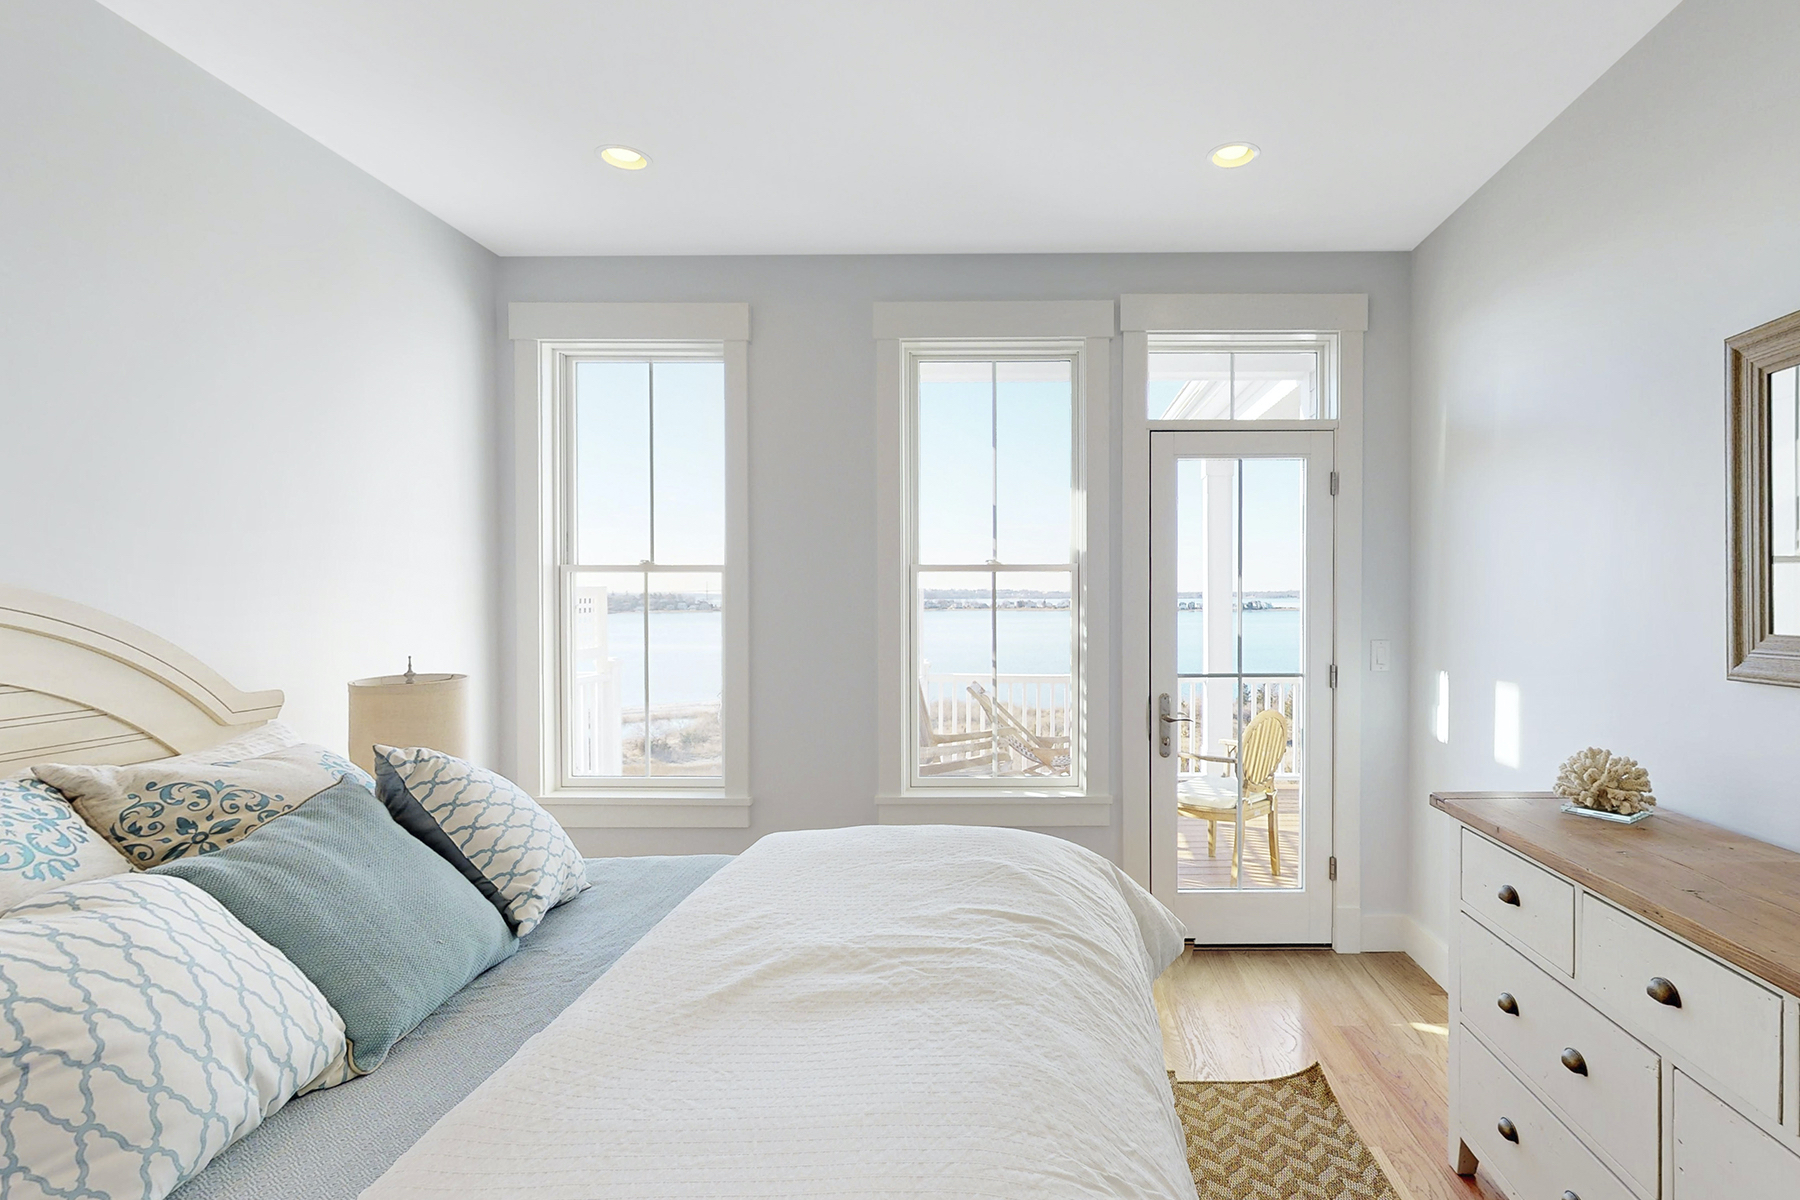 Additional photo for property listing at The Jamestown at the Villages on Mount Hope Bay 177 Leeshore Lane Tiverton, Rhode Island 02878 United States